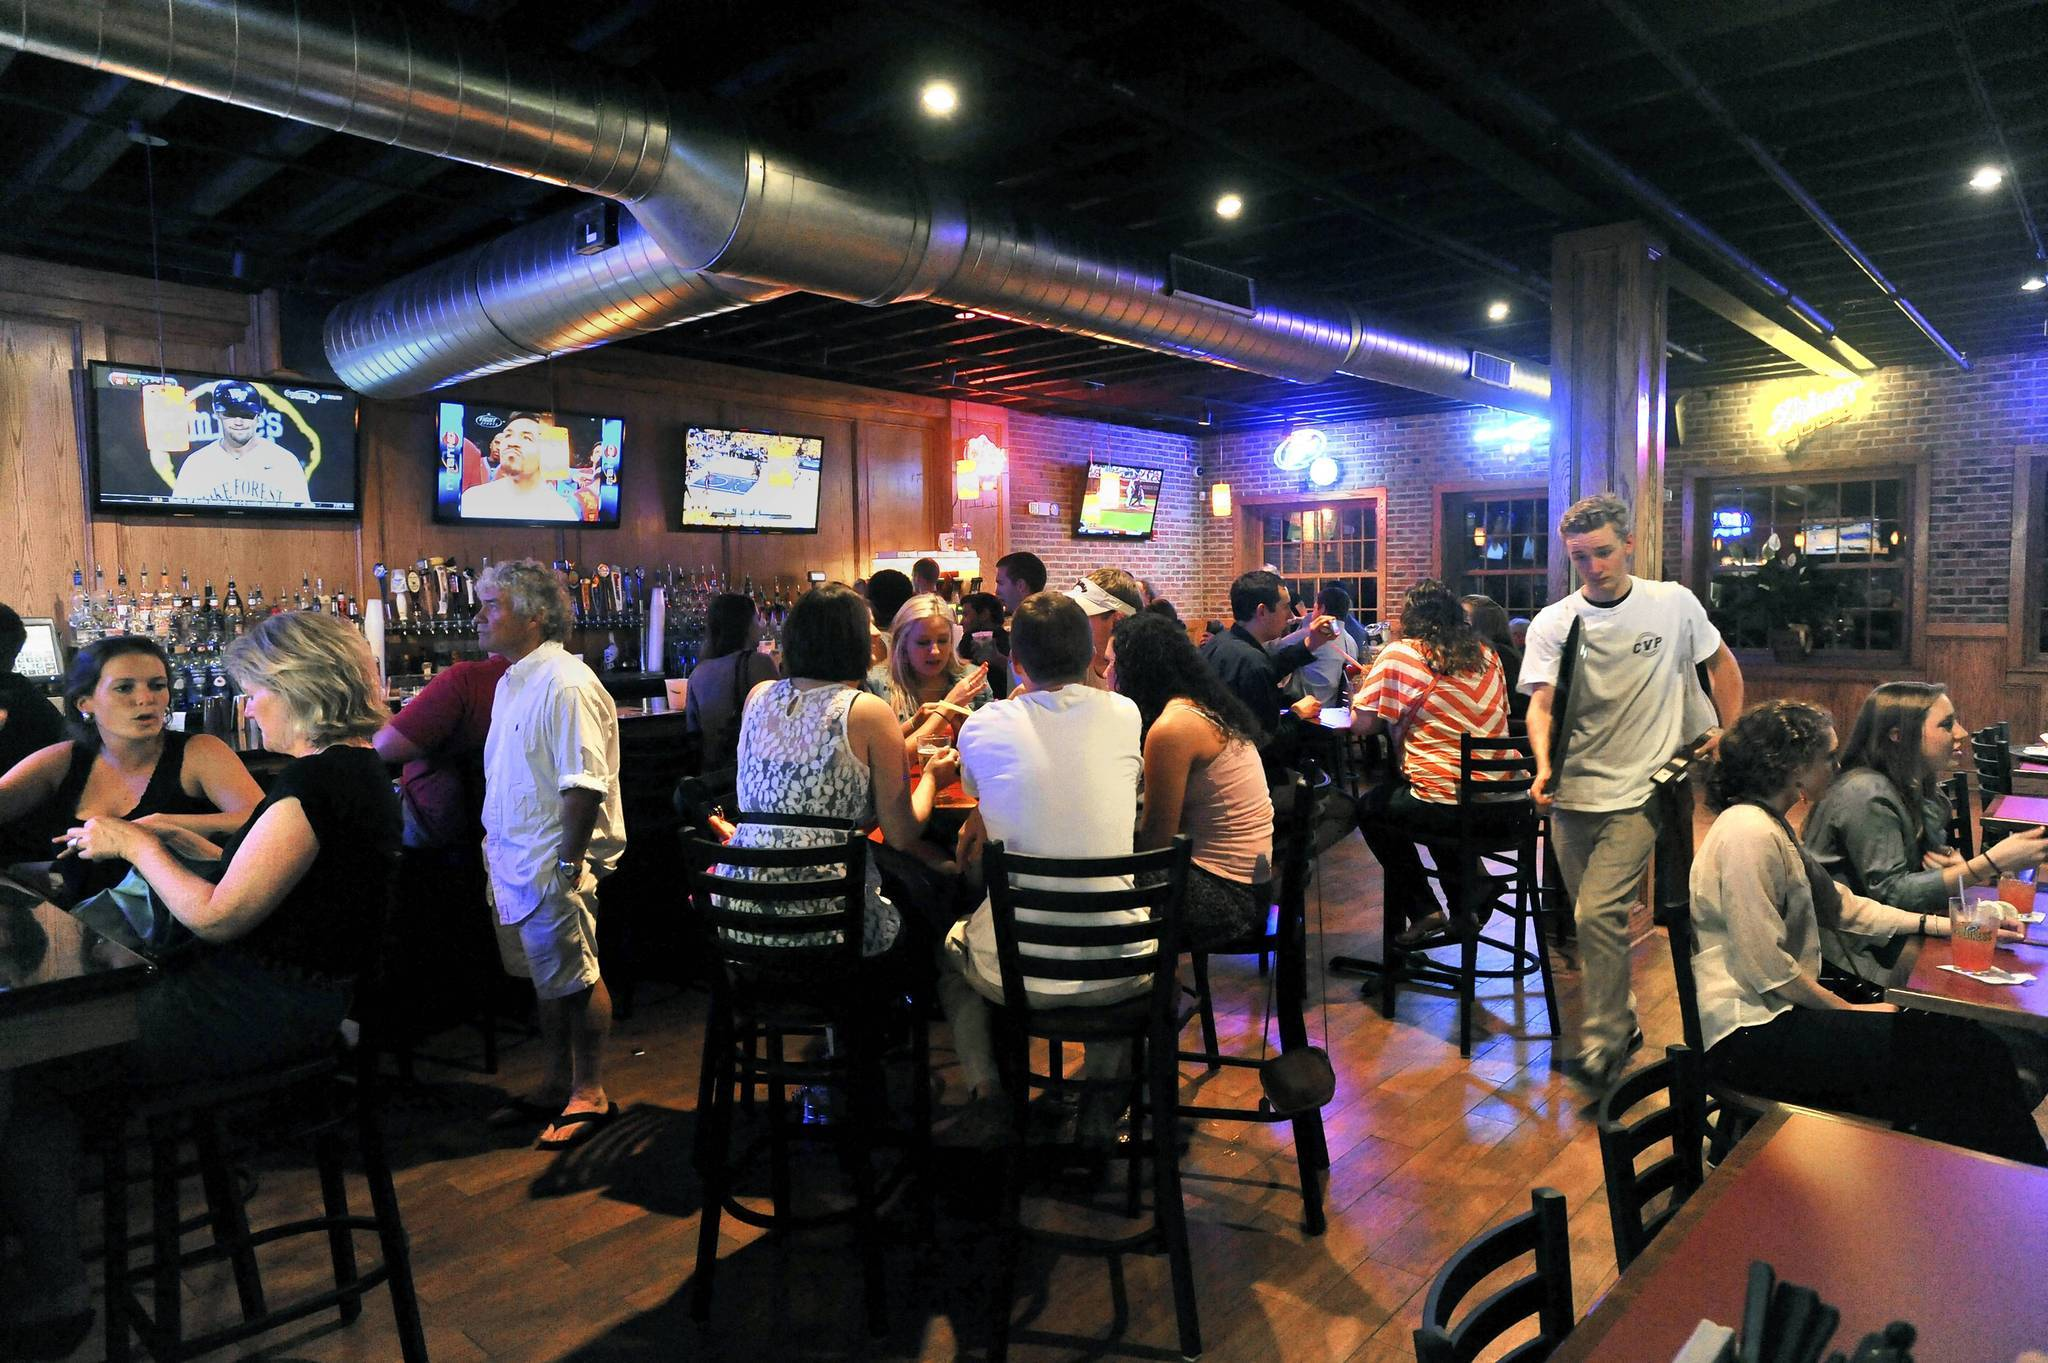 The interior of the recently reopened Charles Village Pub in Towson. The popular establishment was all but destroyed by a fire in January 2011.